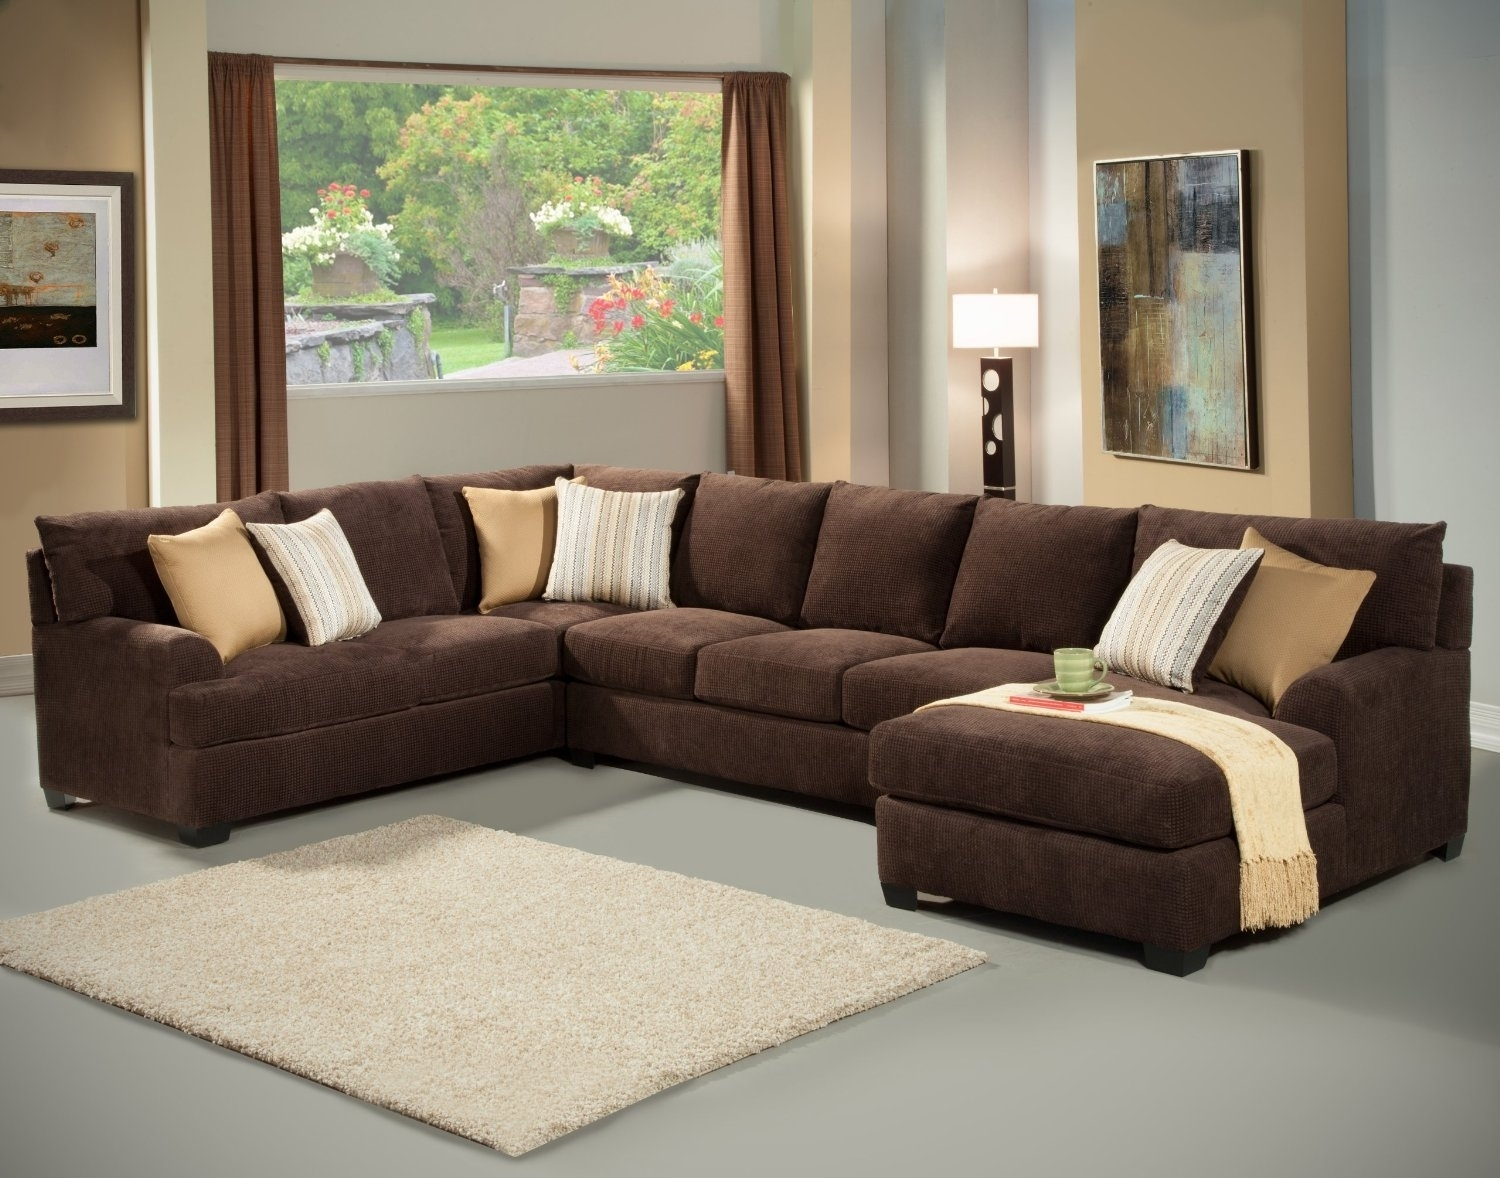 Chocolate Brown Microfiber Sectional Sofa • Sectional Sofa Pertaining To Chocolate Brown Sectional Sofas (View 3 of 10)